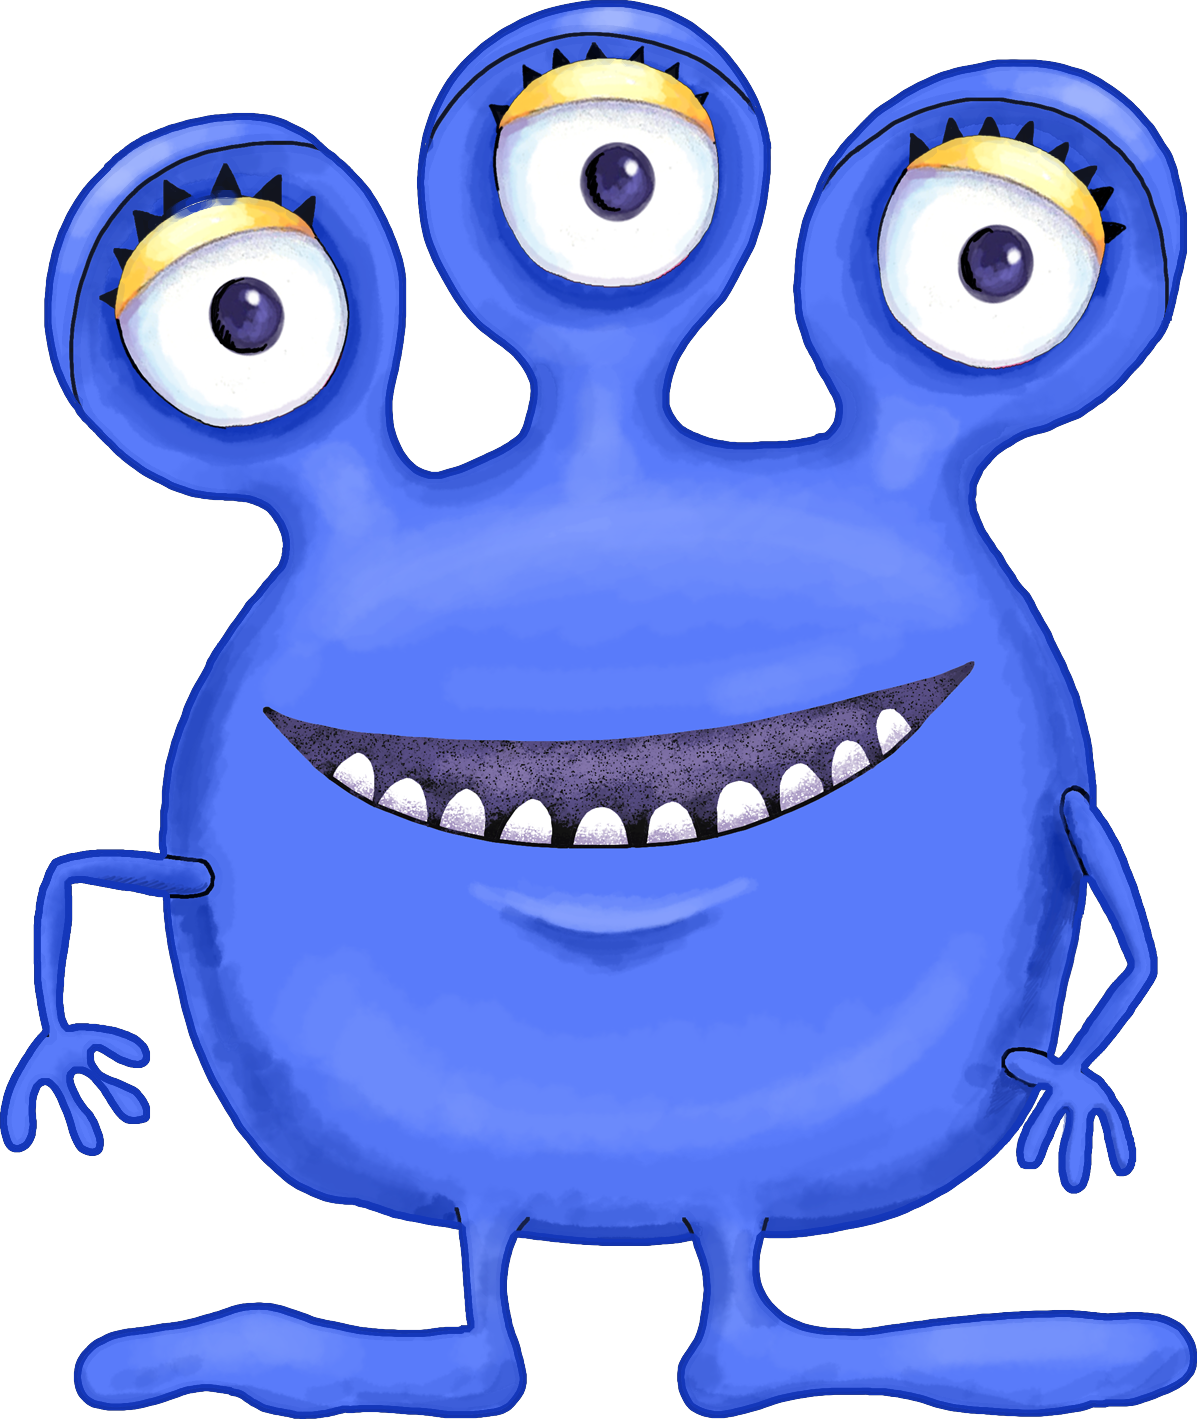 Cute Blue Purple And Green Cartoon Alien-Cute Blue Purple And Green Cartoon Alien Monsters-3